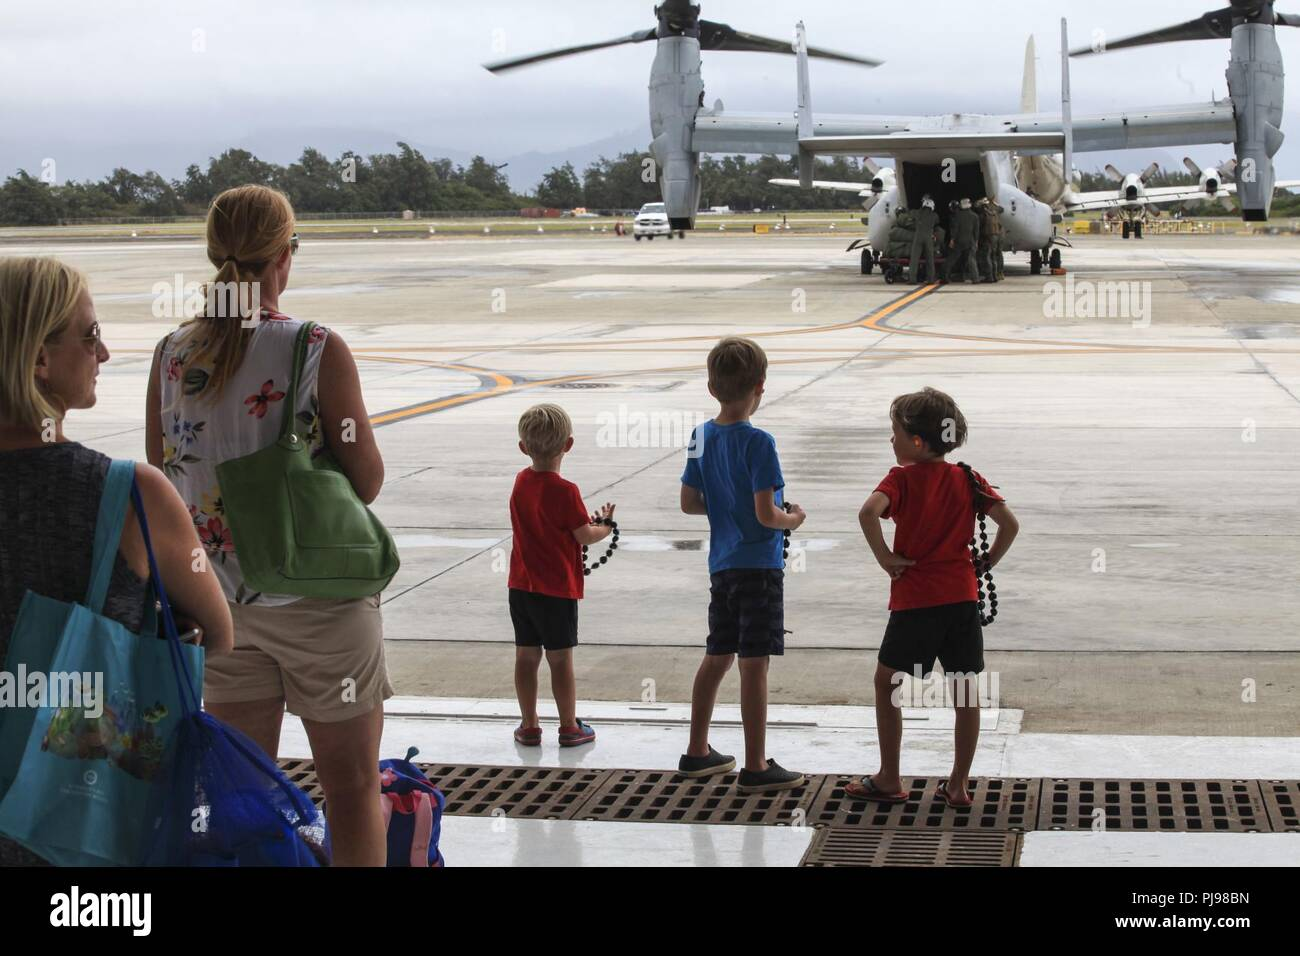 Families wait for their loved ones on MV-22B Ospreys assigned to Marine Medium Tiltrotor Squadron 363 (VMM-363) to disembark, Marine Corps Air Station Kaneohe Bay, Marine Corps Base Hawaii, July 7, 2018. MV-22B Ospreys assigned to VMM-363 is part of the squadron's scheduled relocation to their new command, Marine Aircraft Group 24, 1st Marine Aircraft Wing. VMM-363's capabilities will significantly enhance the Marine Corps' ability to perform humanitarian assistance and disaster response, respond to crises and fulfill other alliance roles in the Indo-Pacific region. Decisions regarding the arr Stock Photo